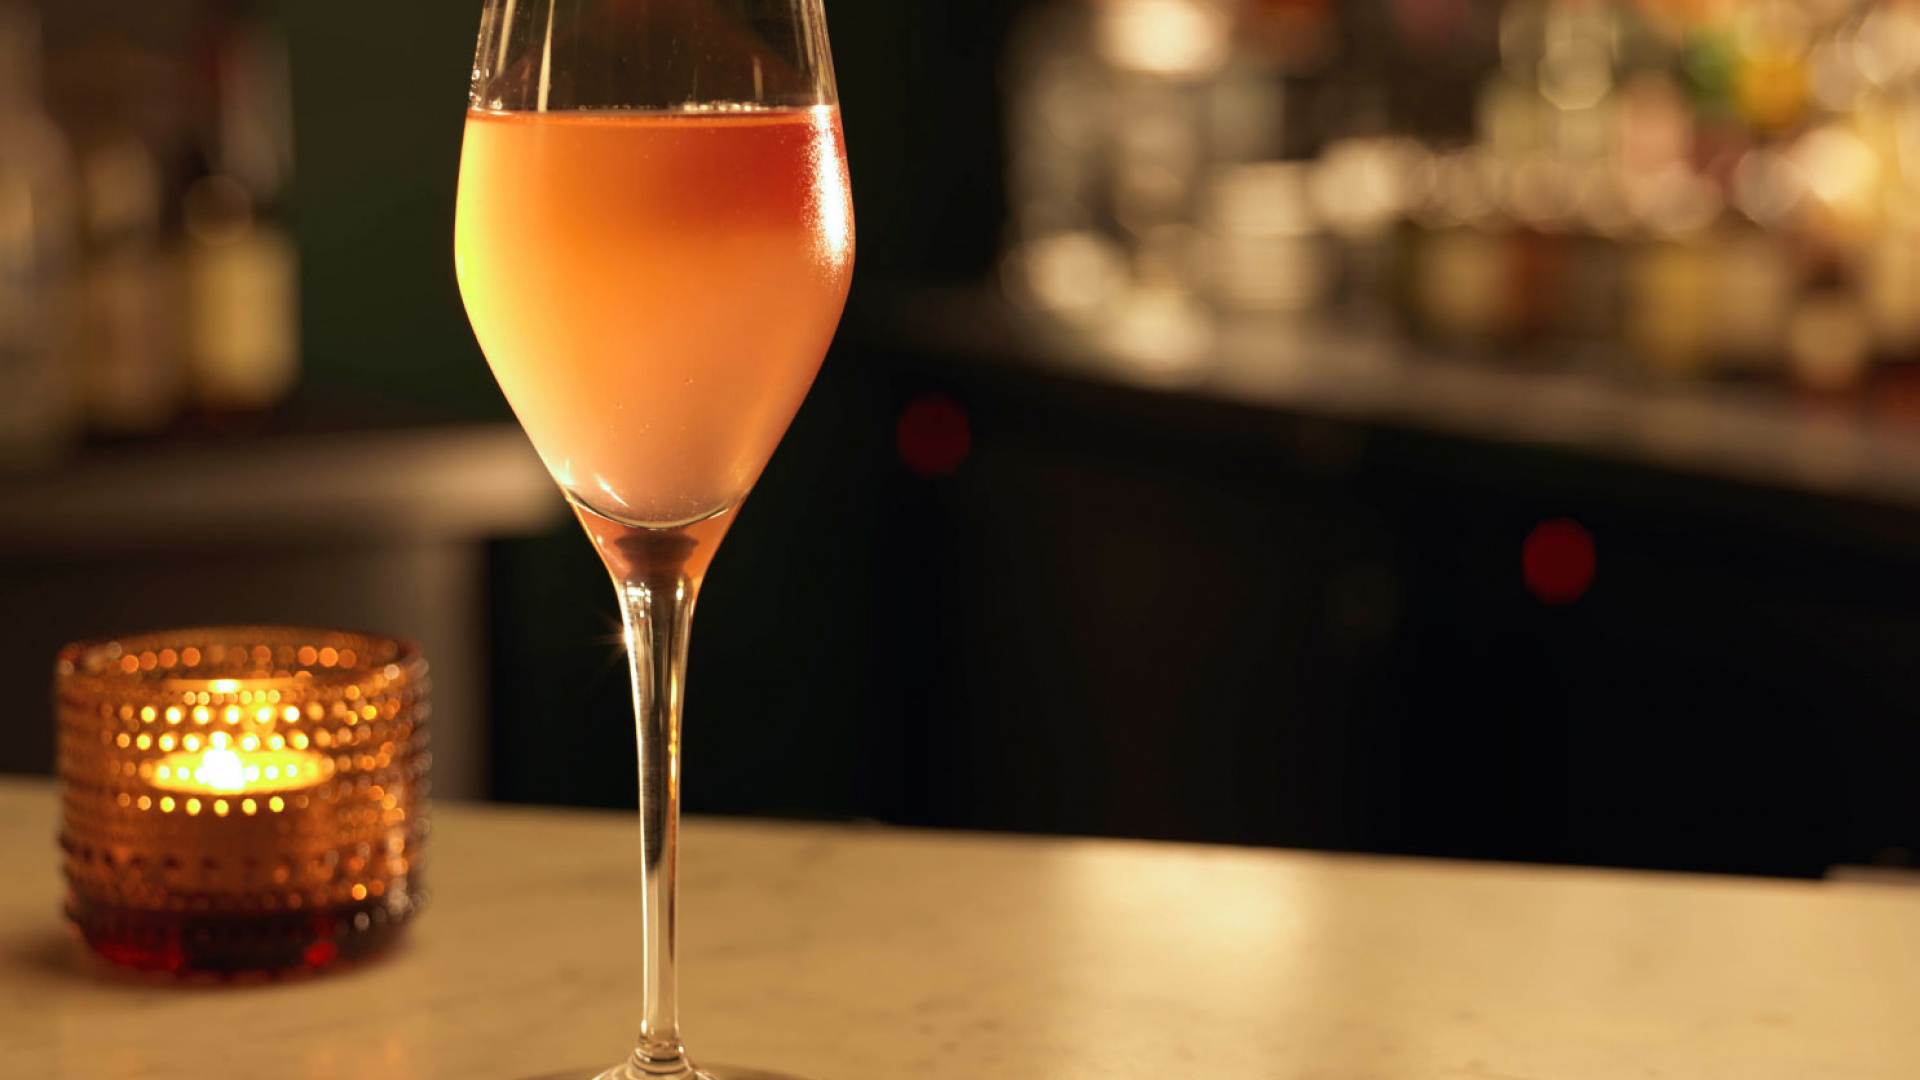 Bar Eight's Amore cocktail